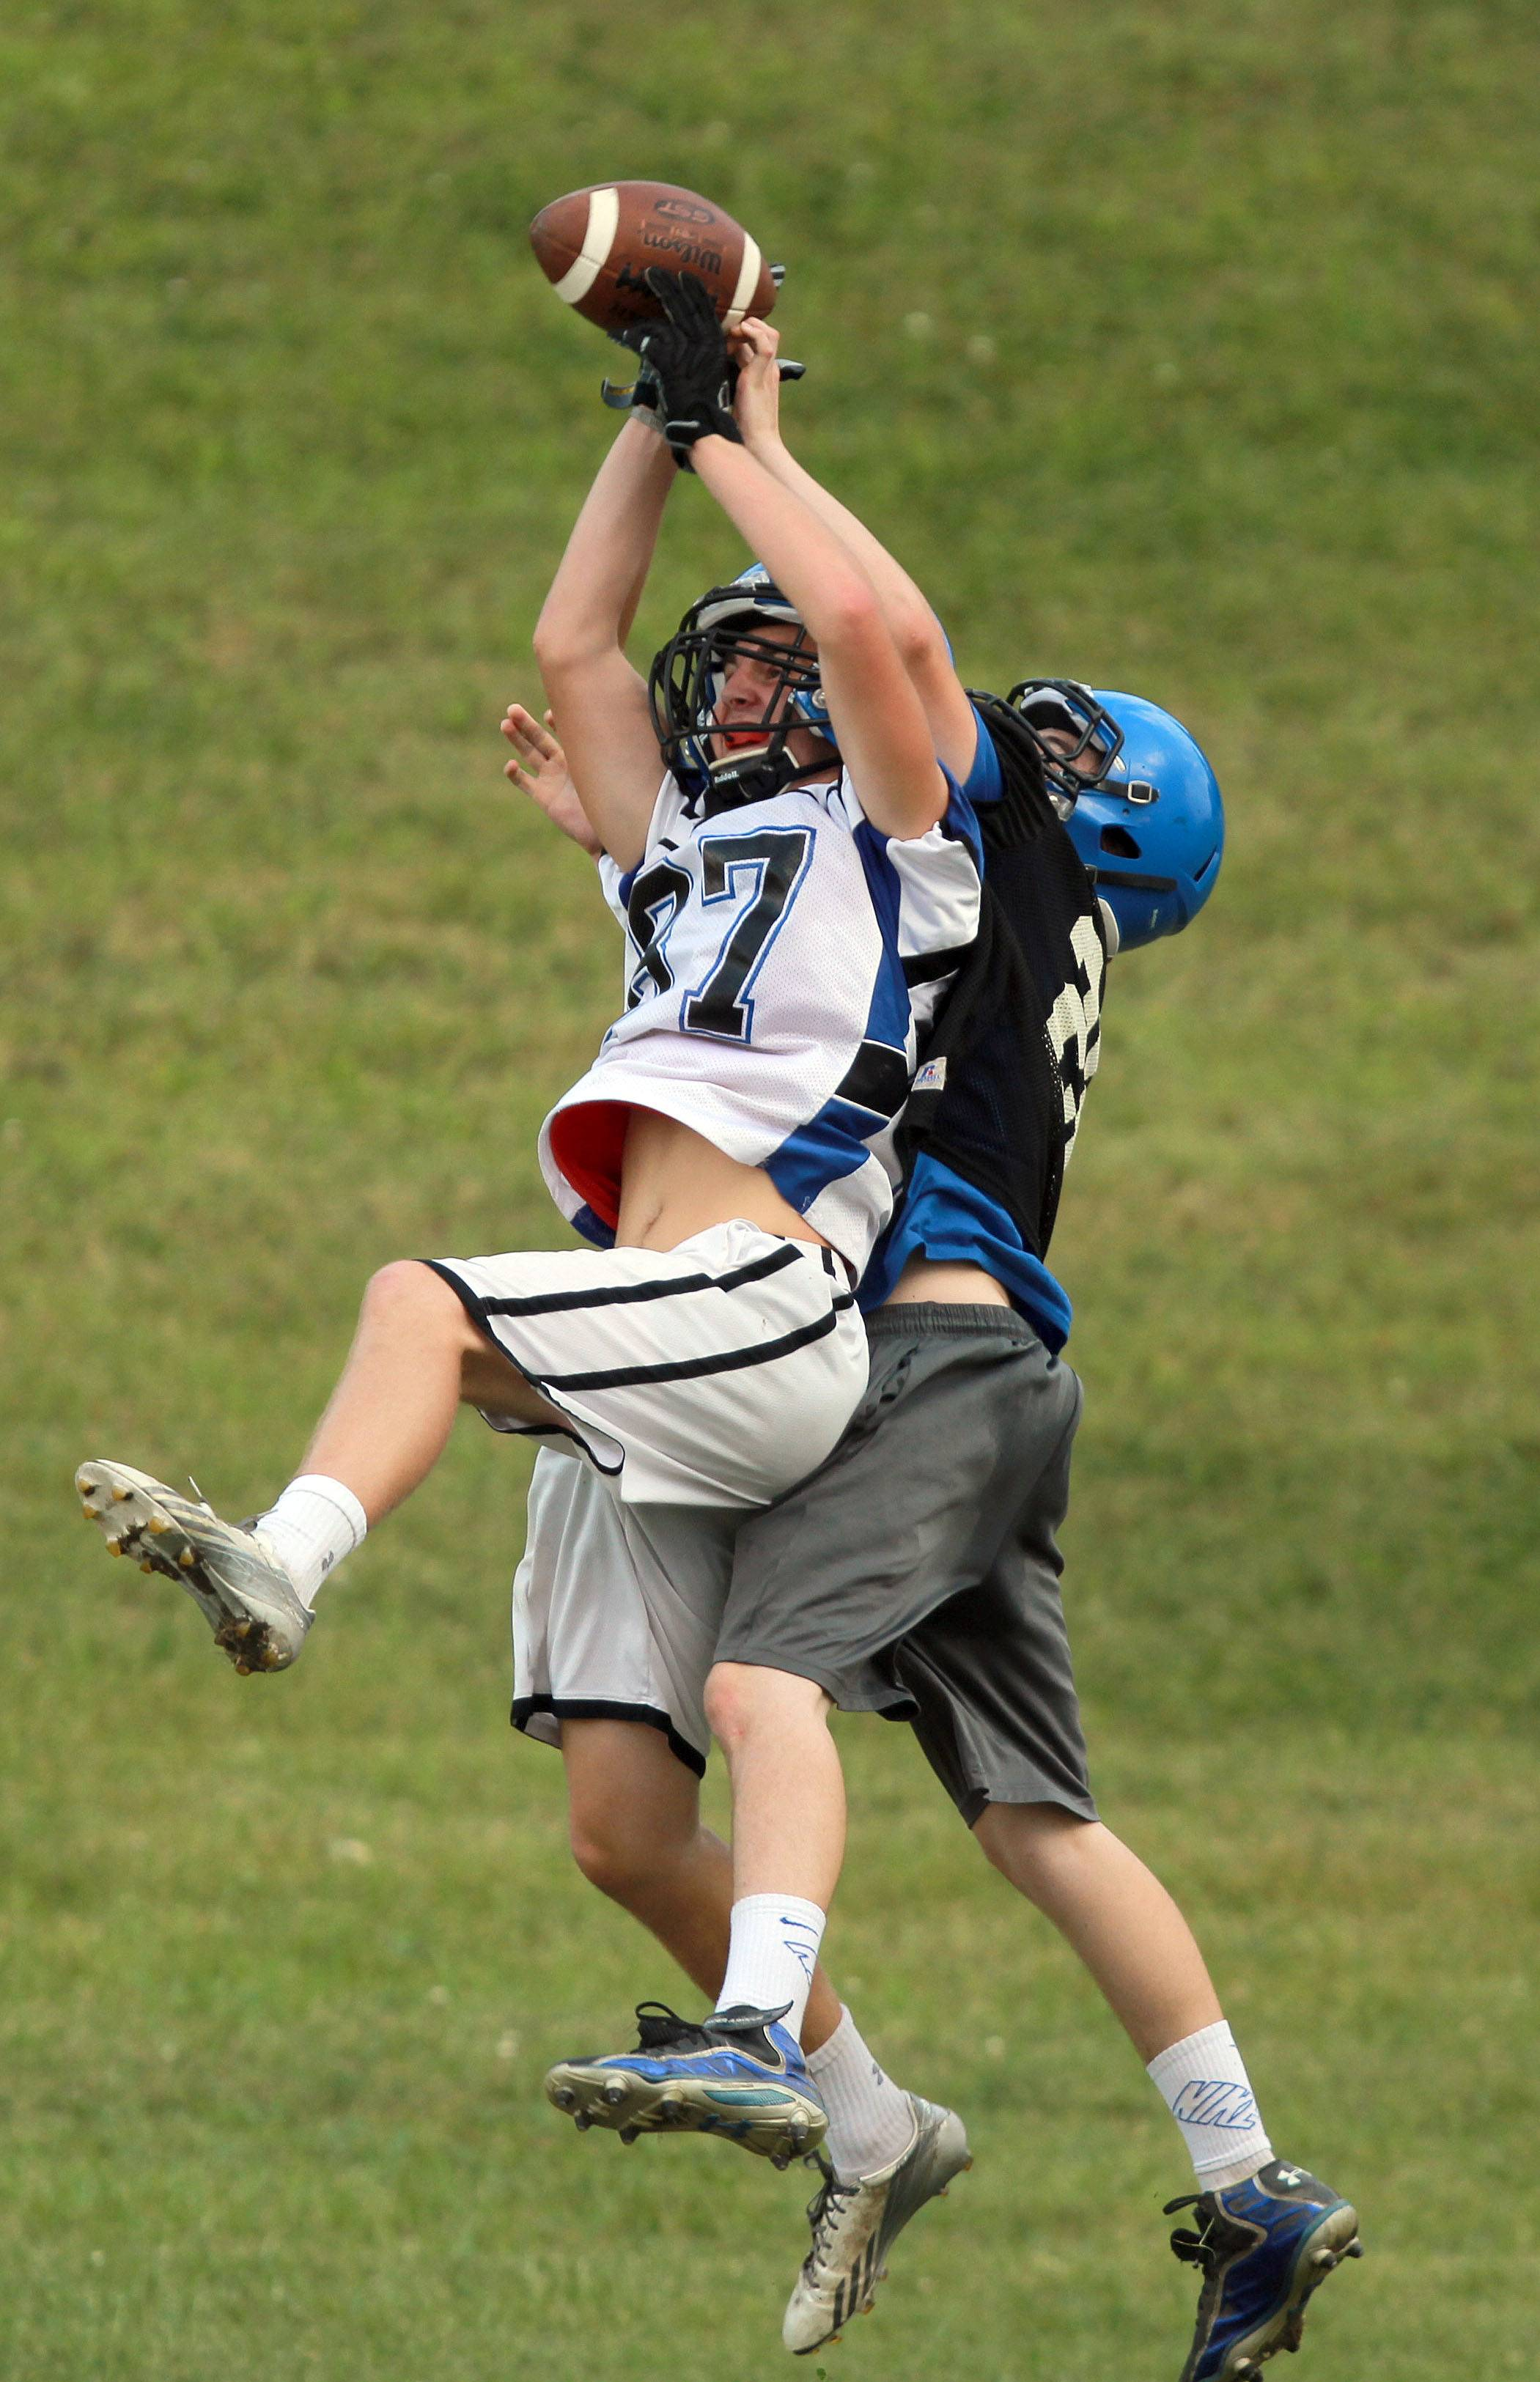 Steve Lundy/slundy@dailyherald.com  Pat Rigby, left, goes up for a pass with Jeremy Brown during football practice Monday at Lake Zurich.